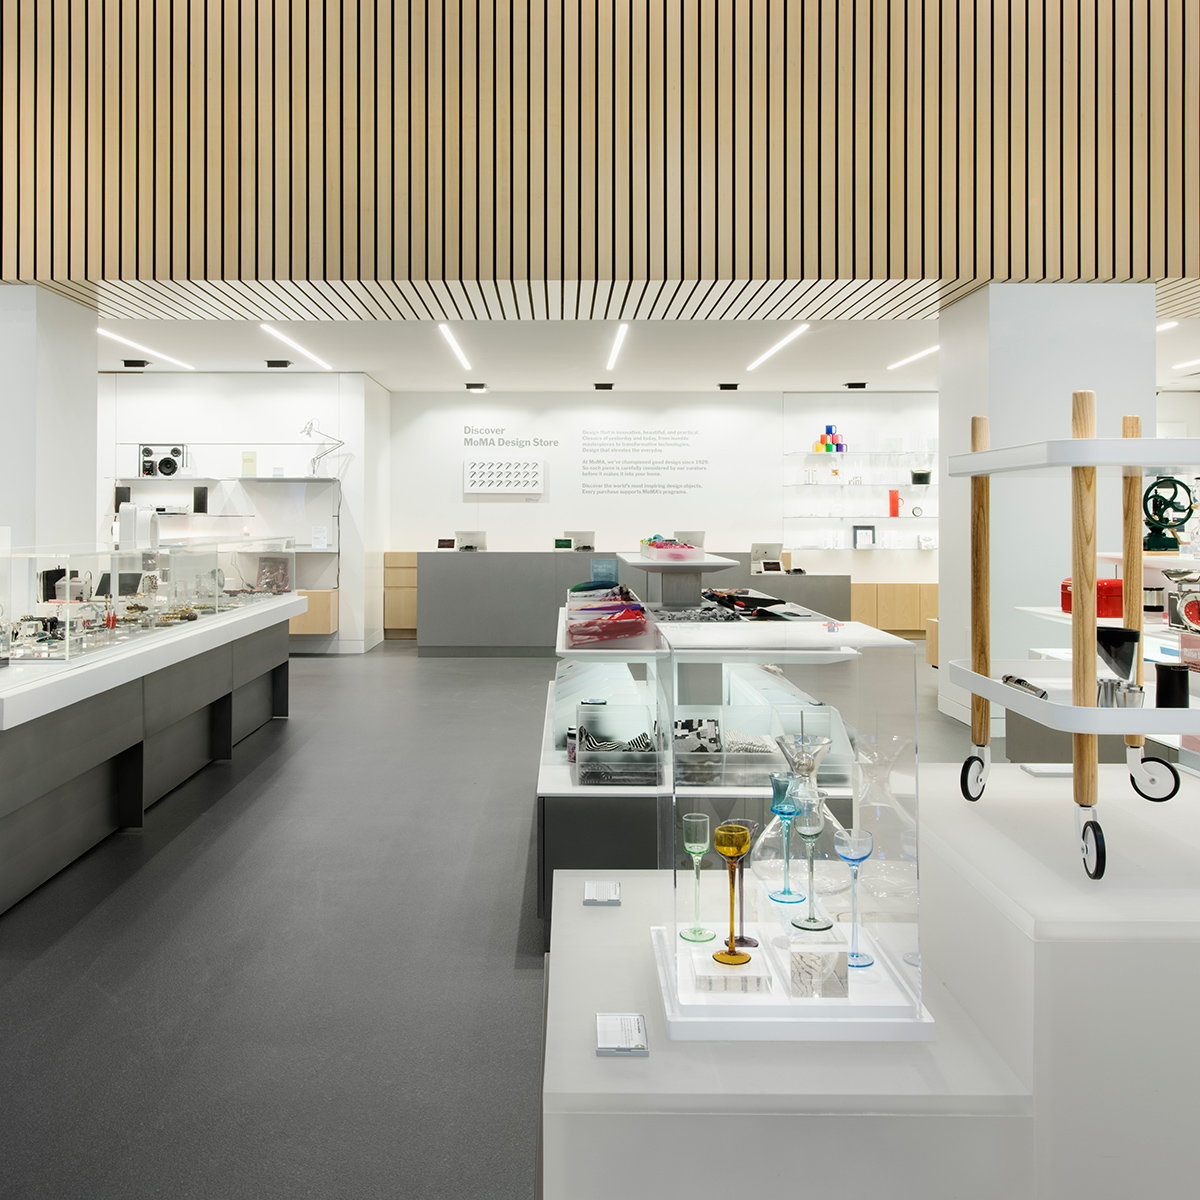 Lumsden Recognised with German Design Award for MoMA Design Store